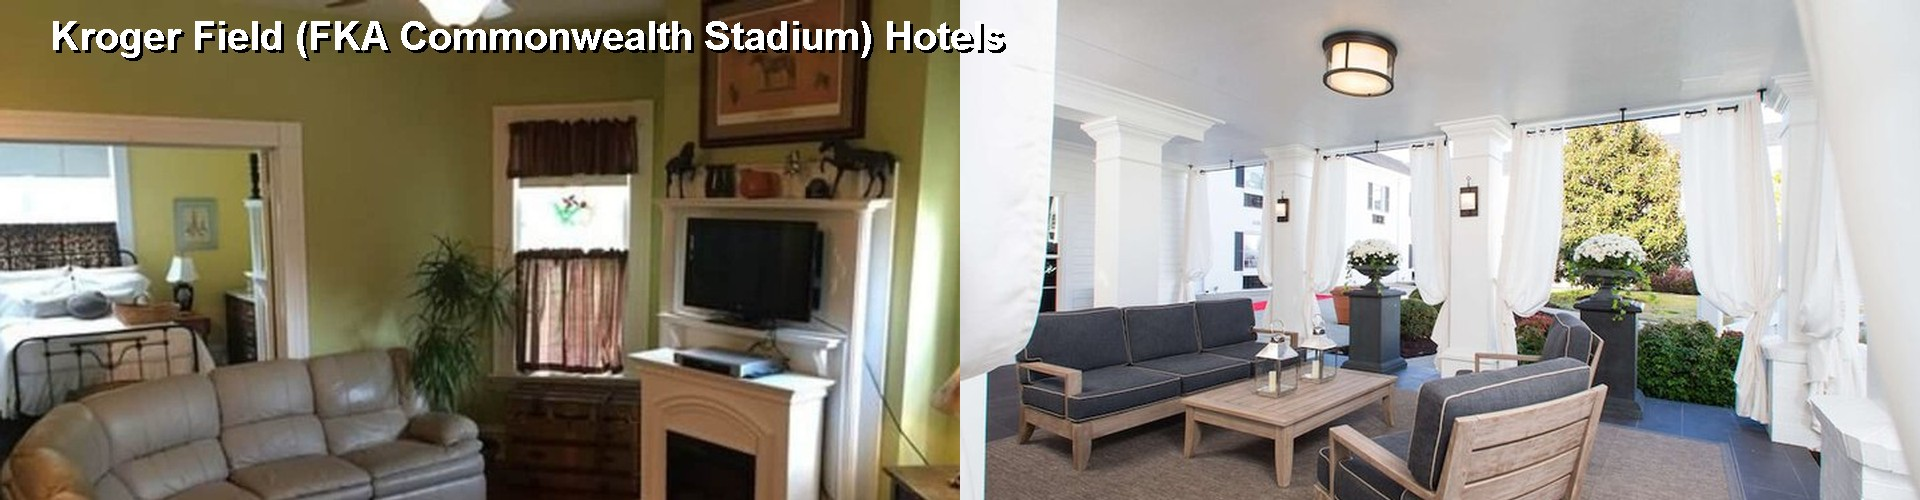 5 Best Hotels near Kroger Field (FKA Commonwealth Stadium)